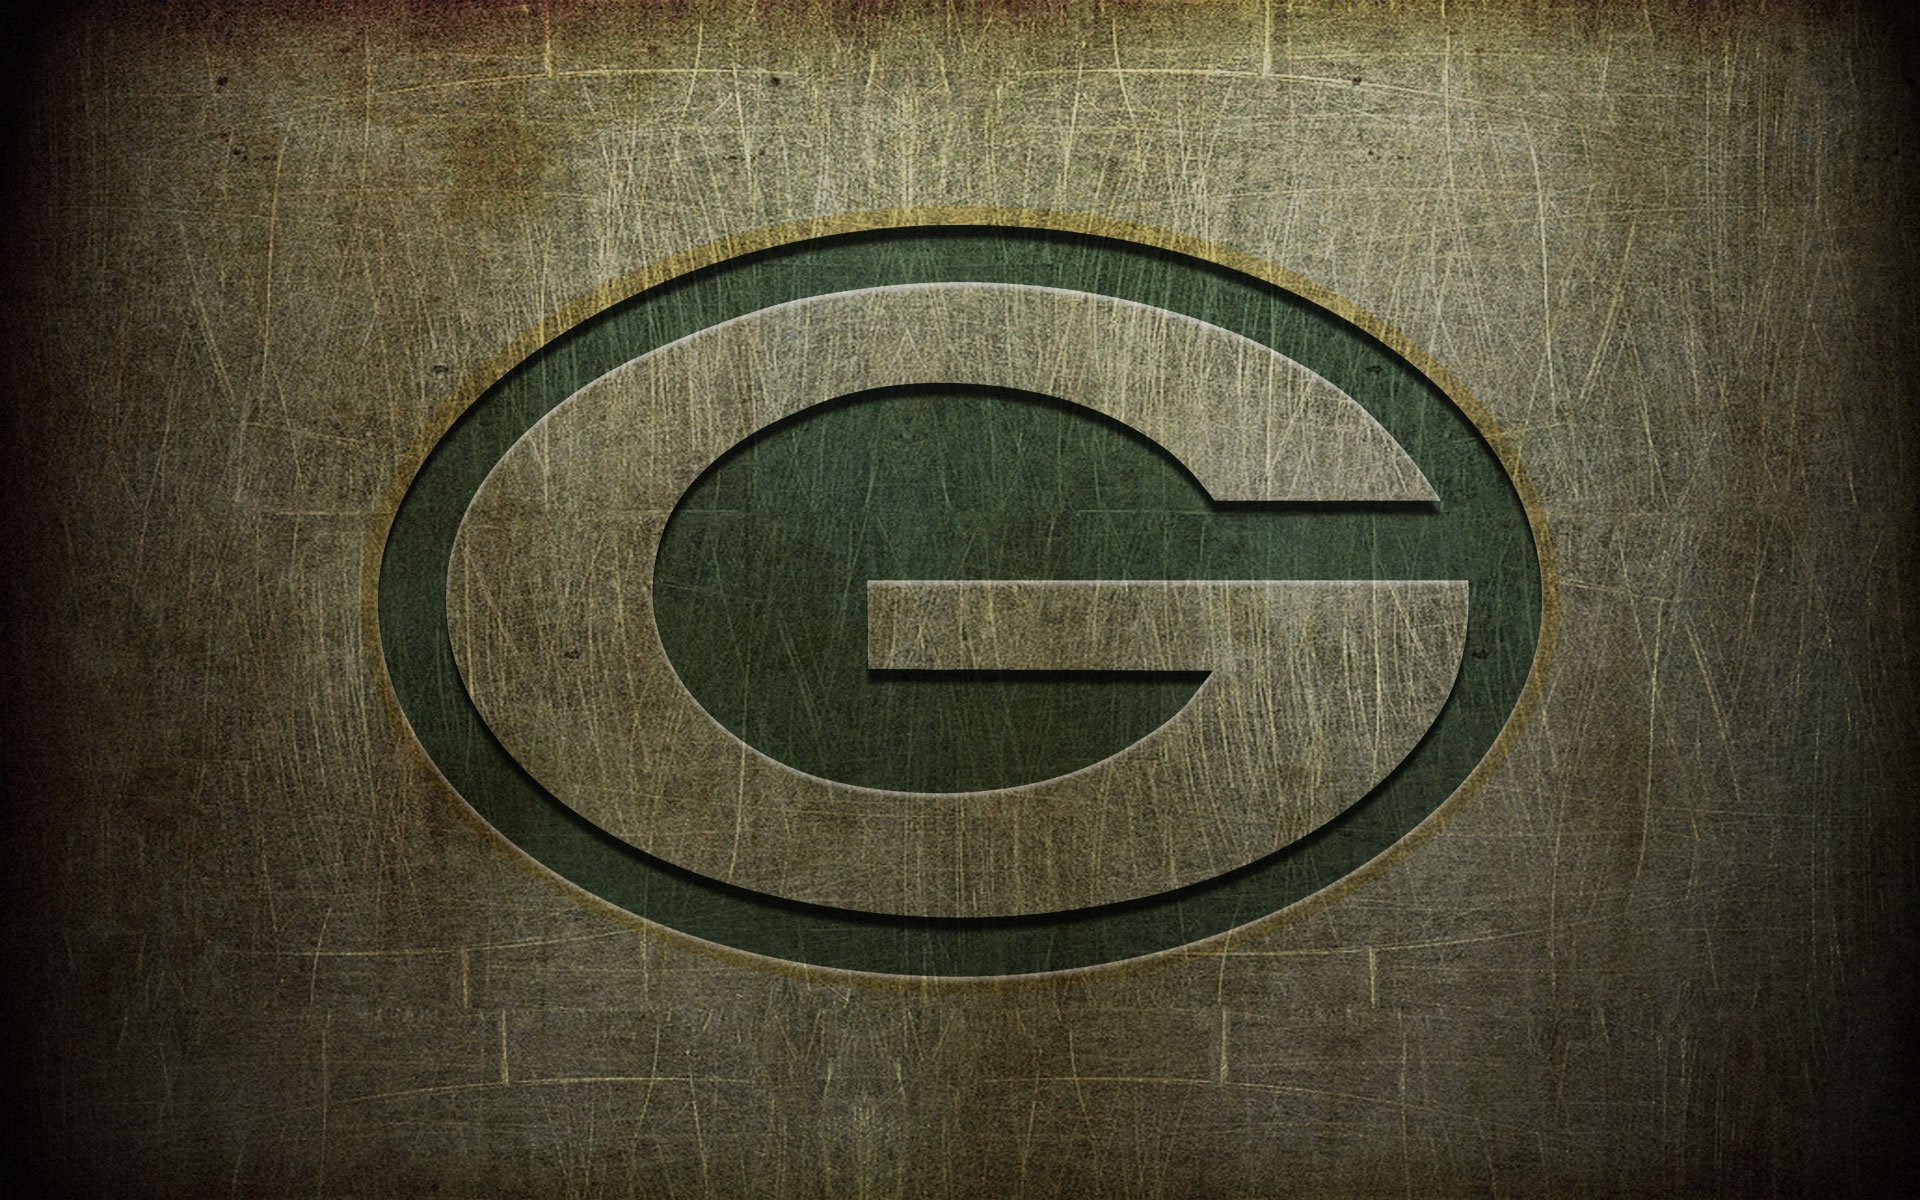 green bay packers wallpaper iphone 5